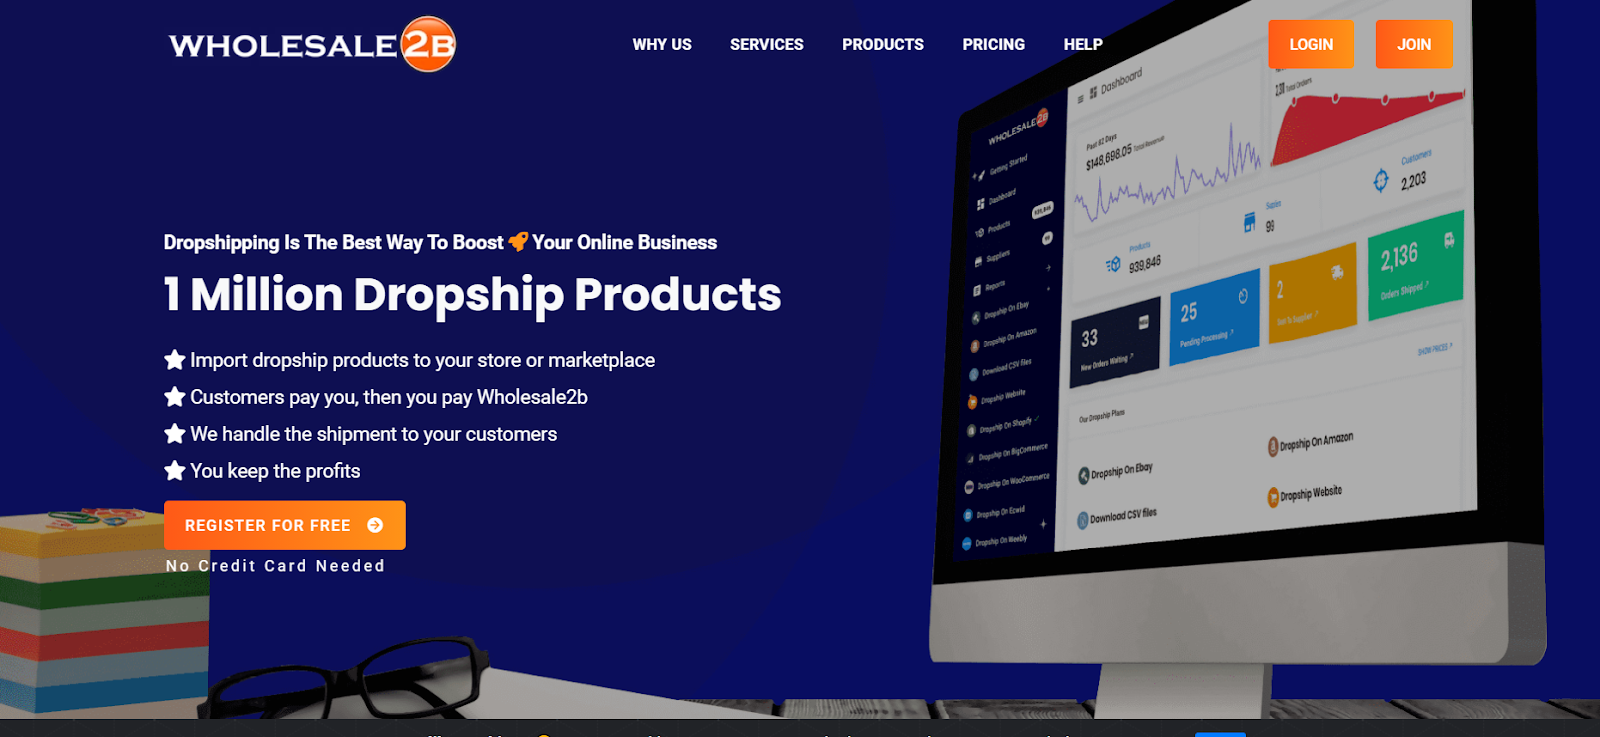 wholsale2b dropshipping website